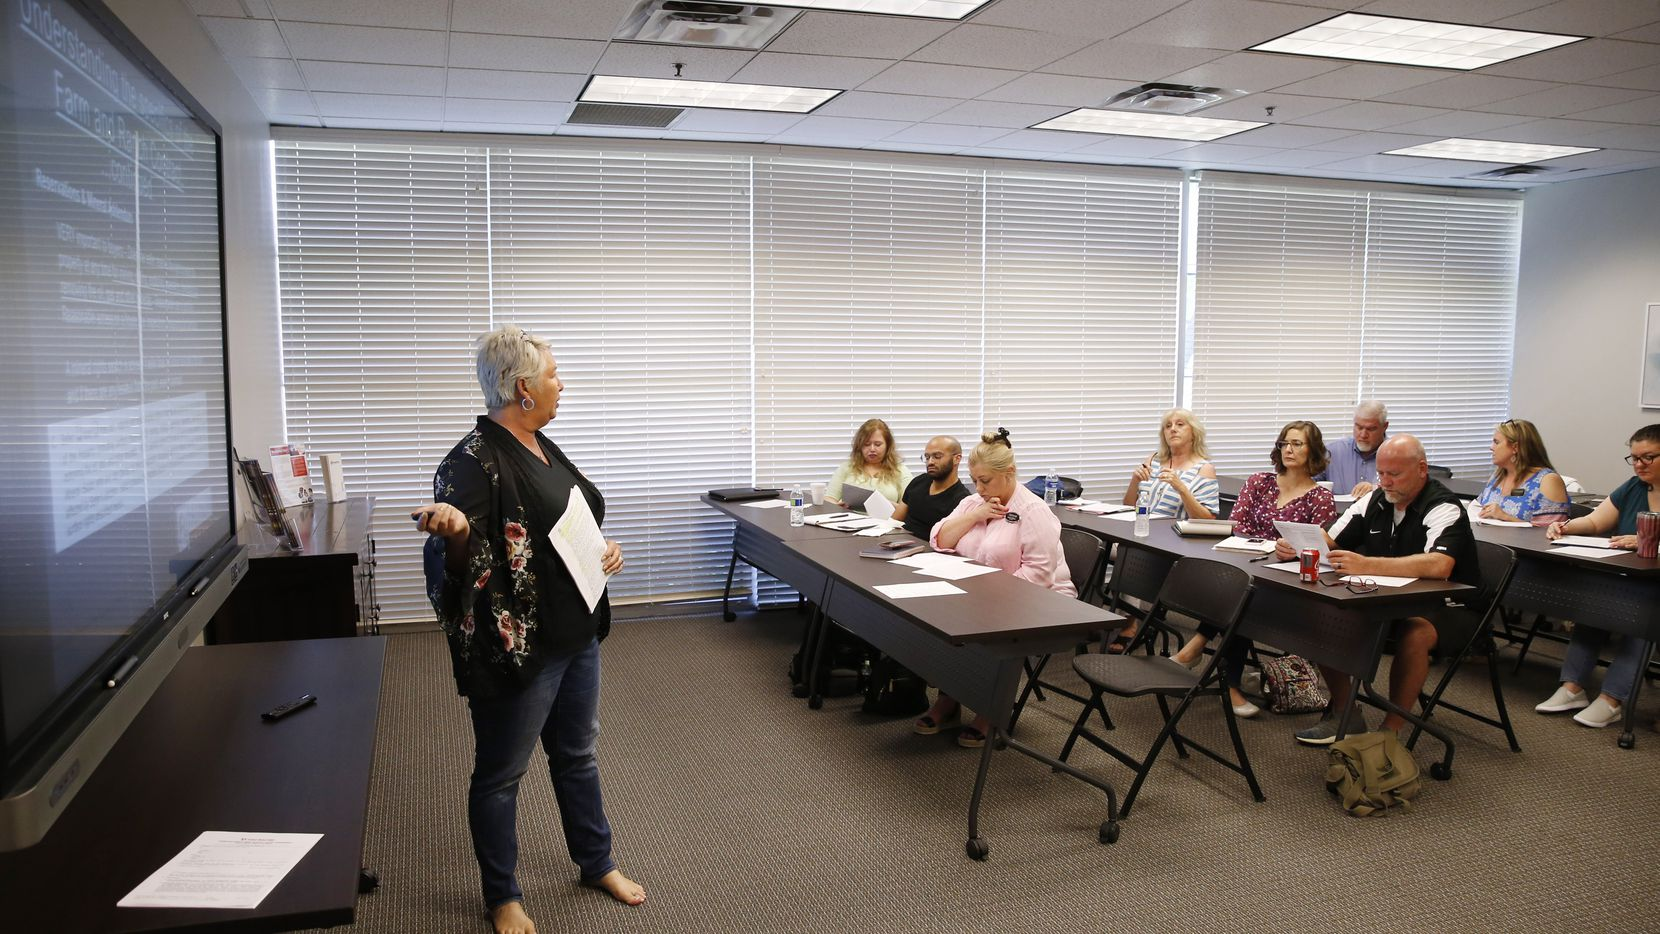 Genevieve Golden leads a farm and ranch contract training session for Fathom Realty agents in Plano.